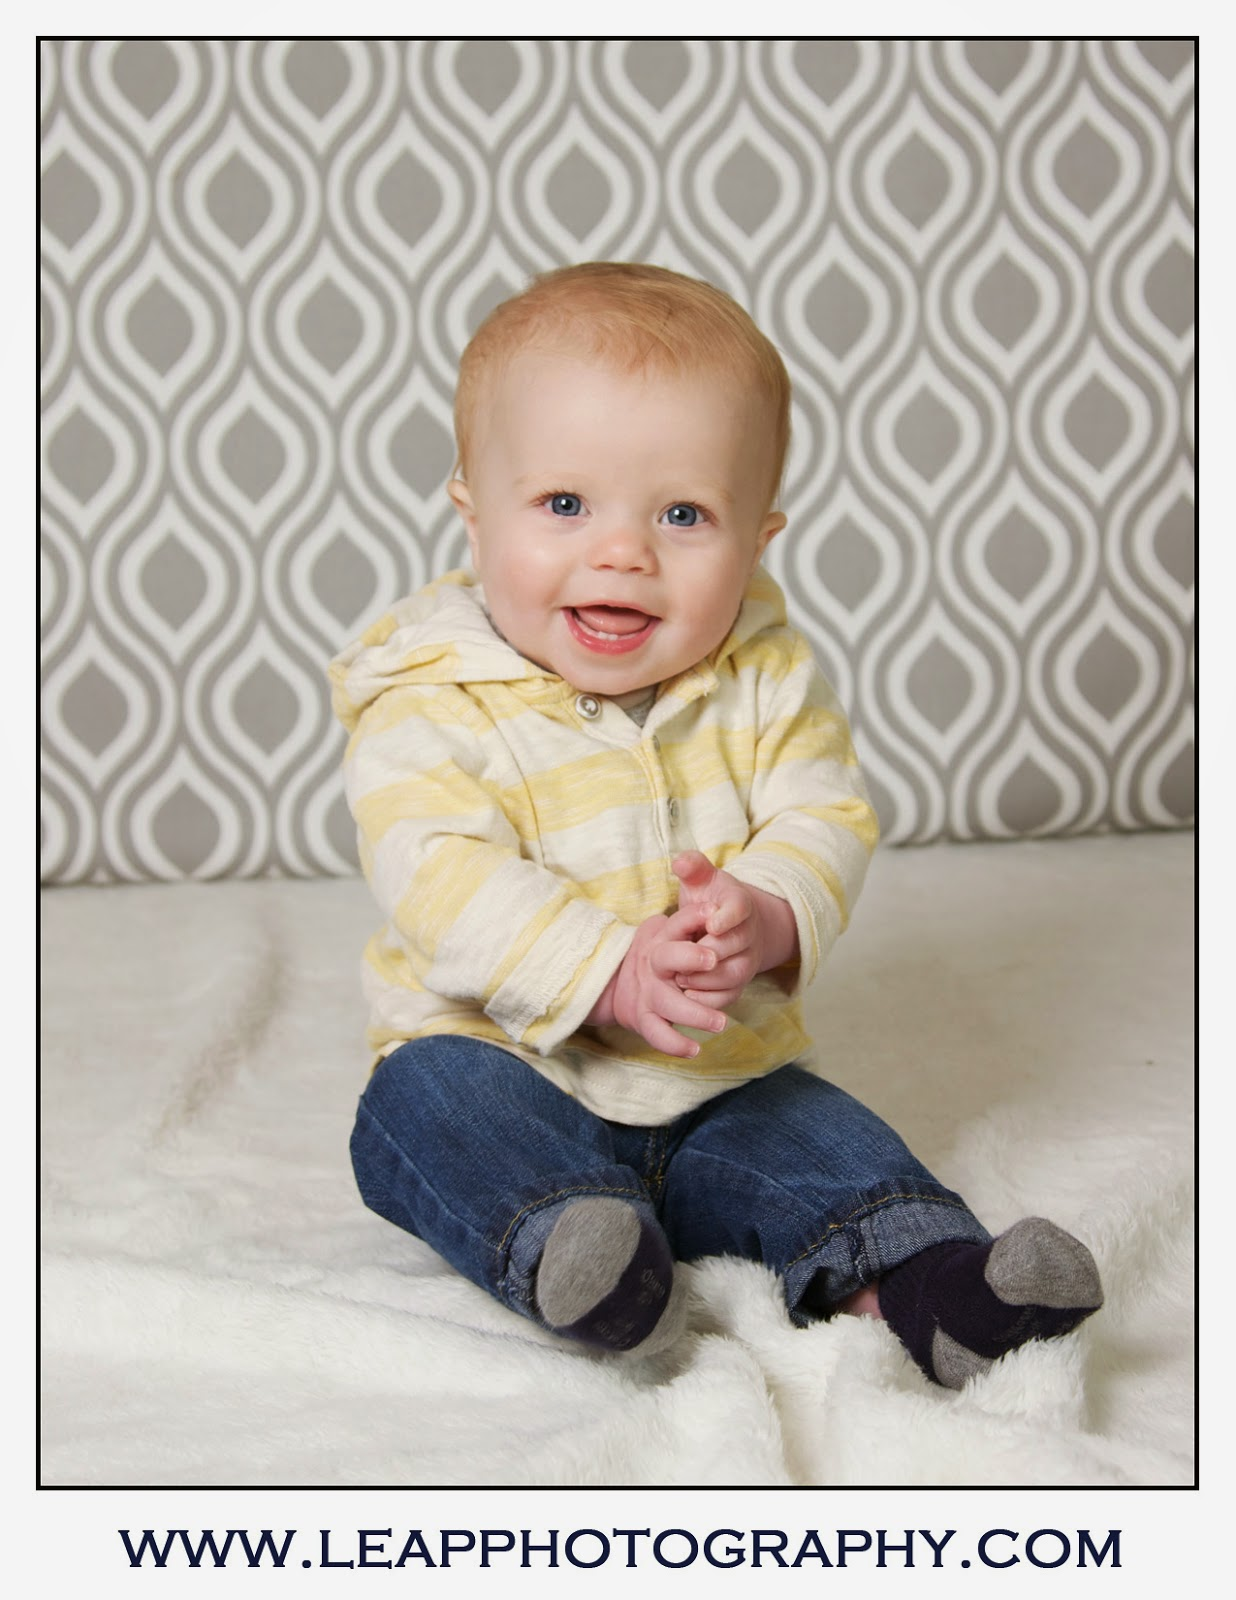 7 month old boy portrait with yellow stripped shirt